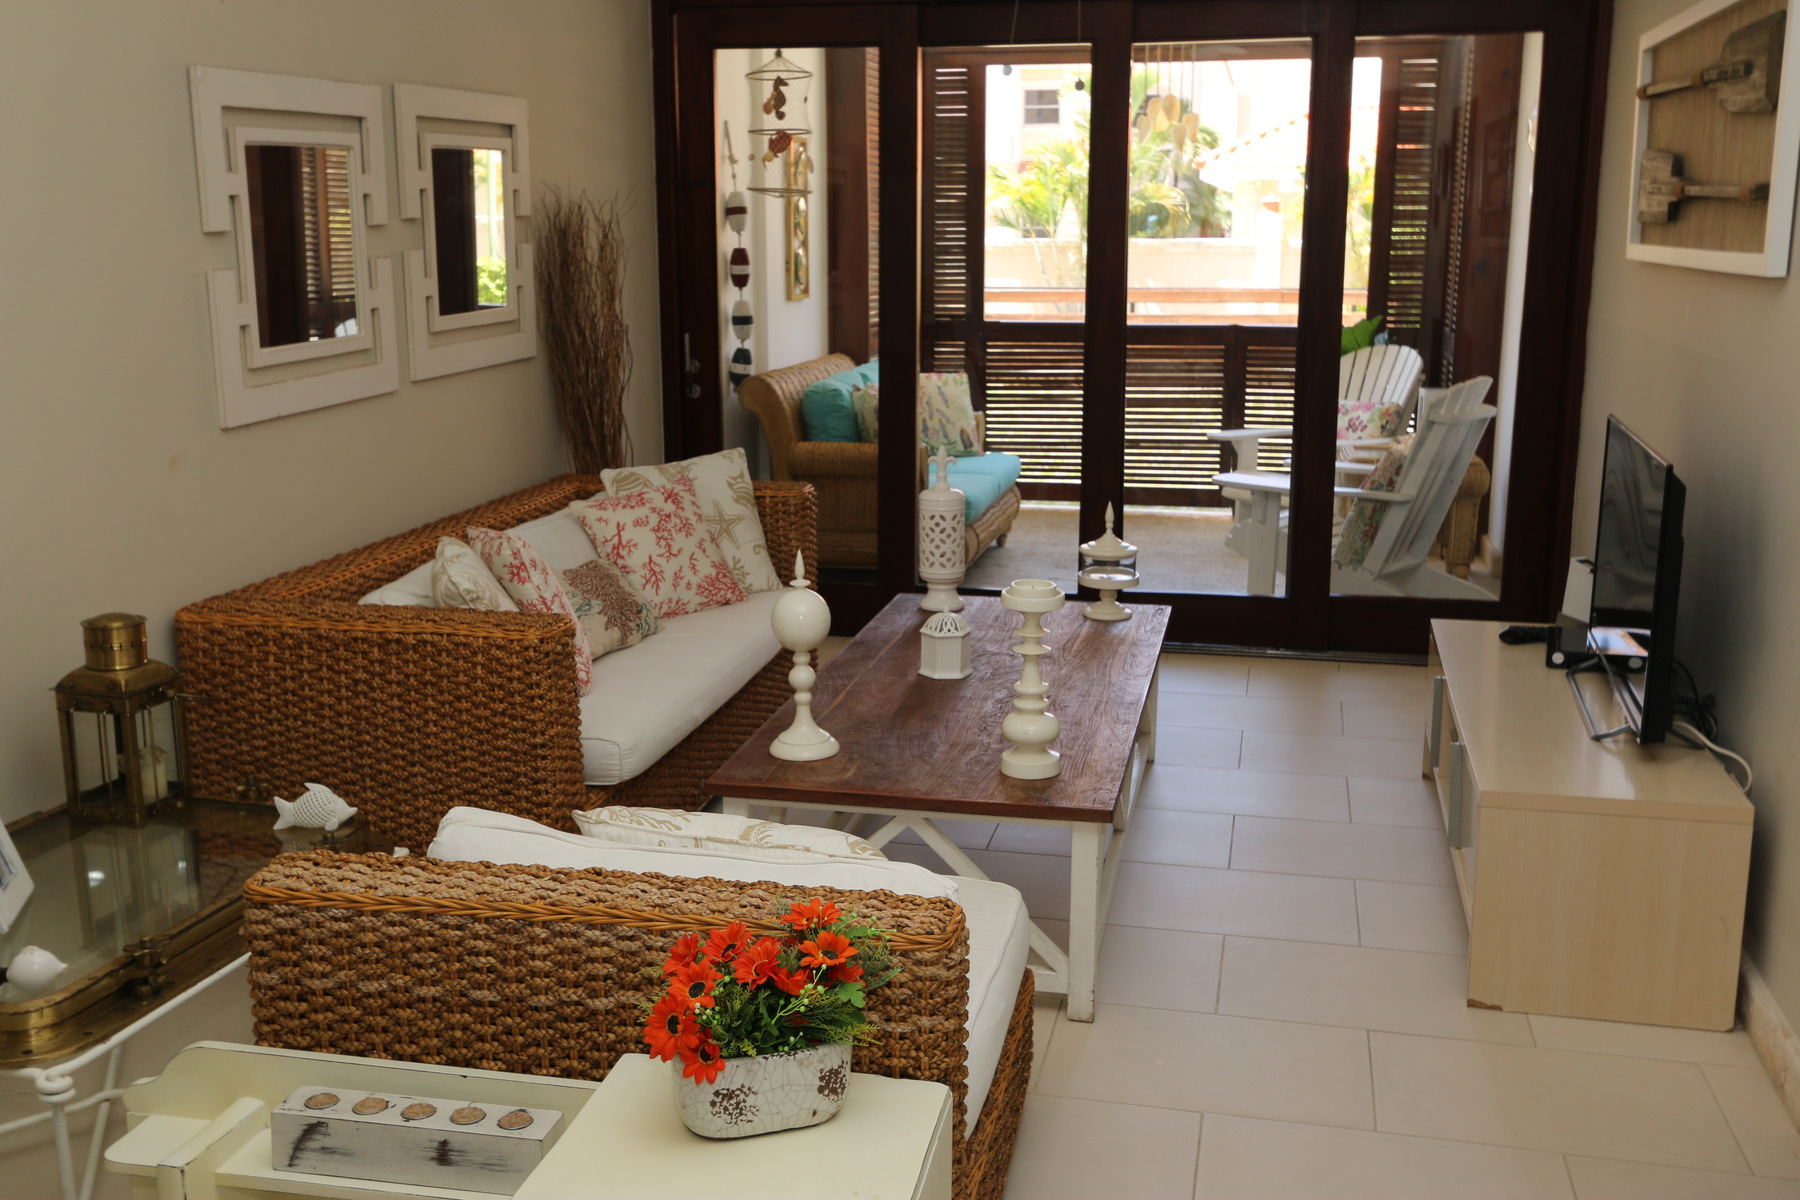 Condominium for Sale at Pelican Beach Condo 1-1 Pelican Beach, Cabarete, Puerto Plata, 57000 Dominican Republic